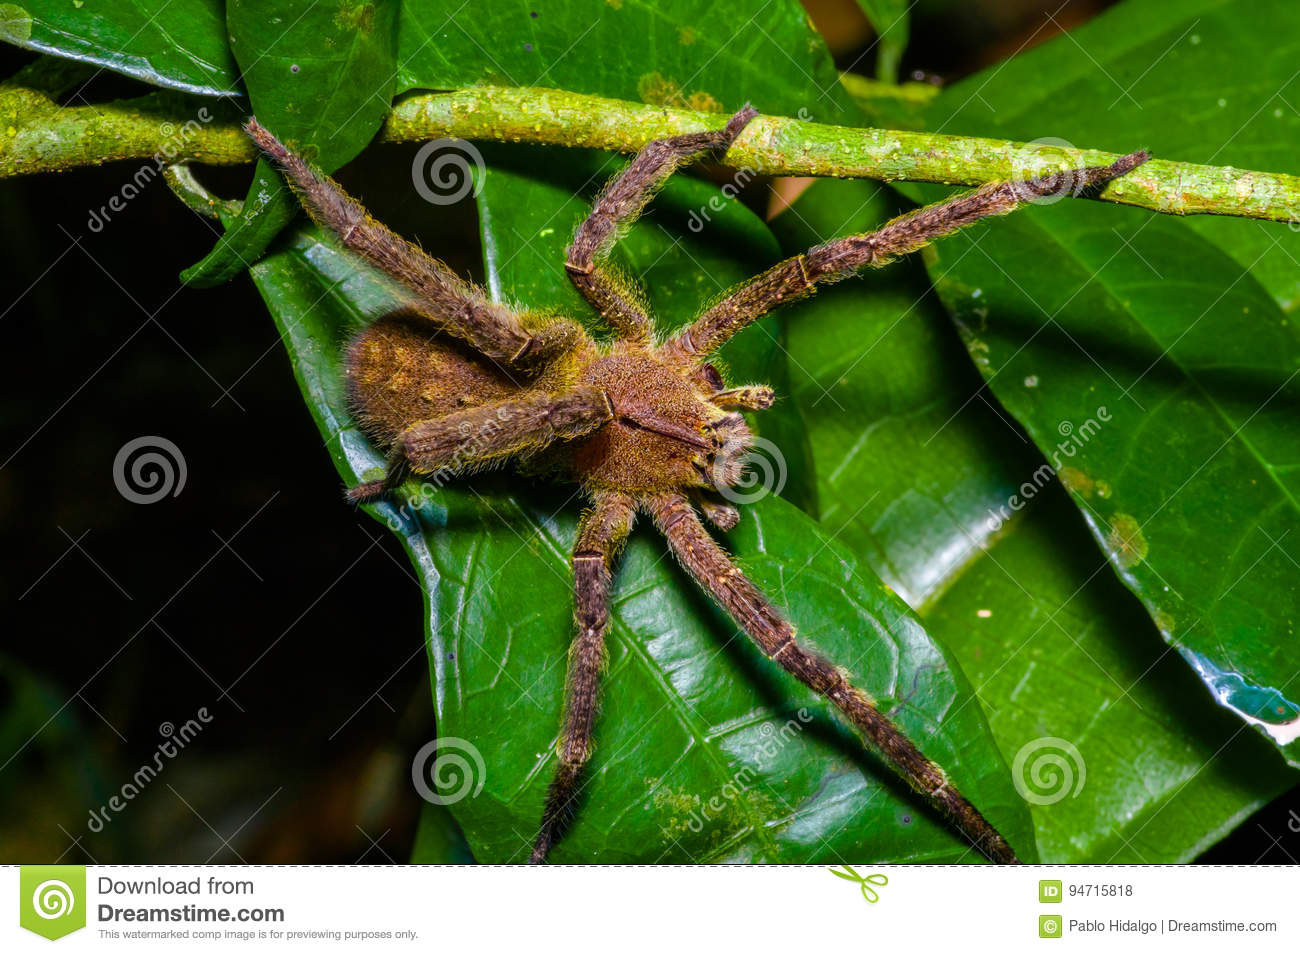 Venomous wandering spider Phoneutria fera sitting on a heliconia leaf in the amazon rainforest in the Cuyabeno National